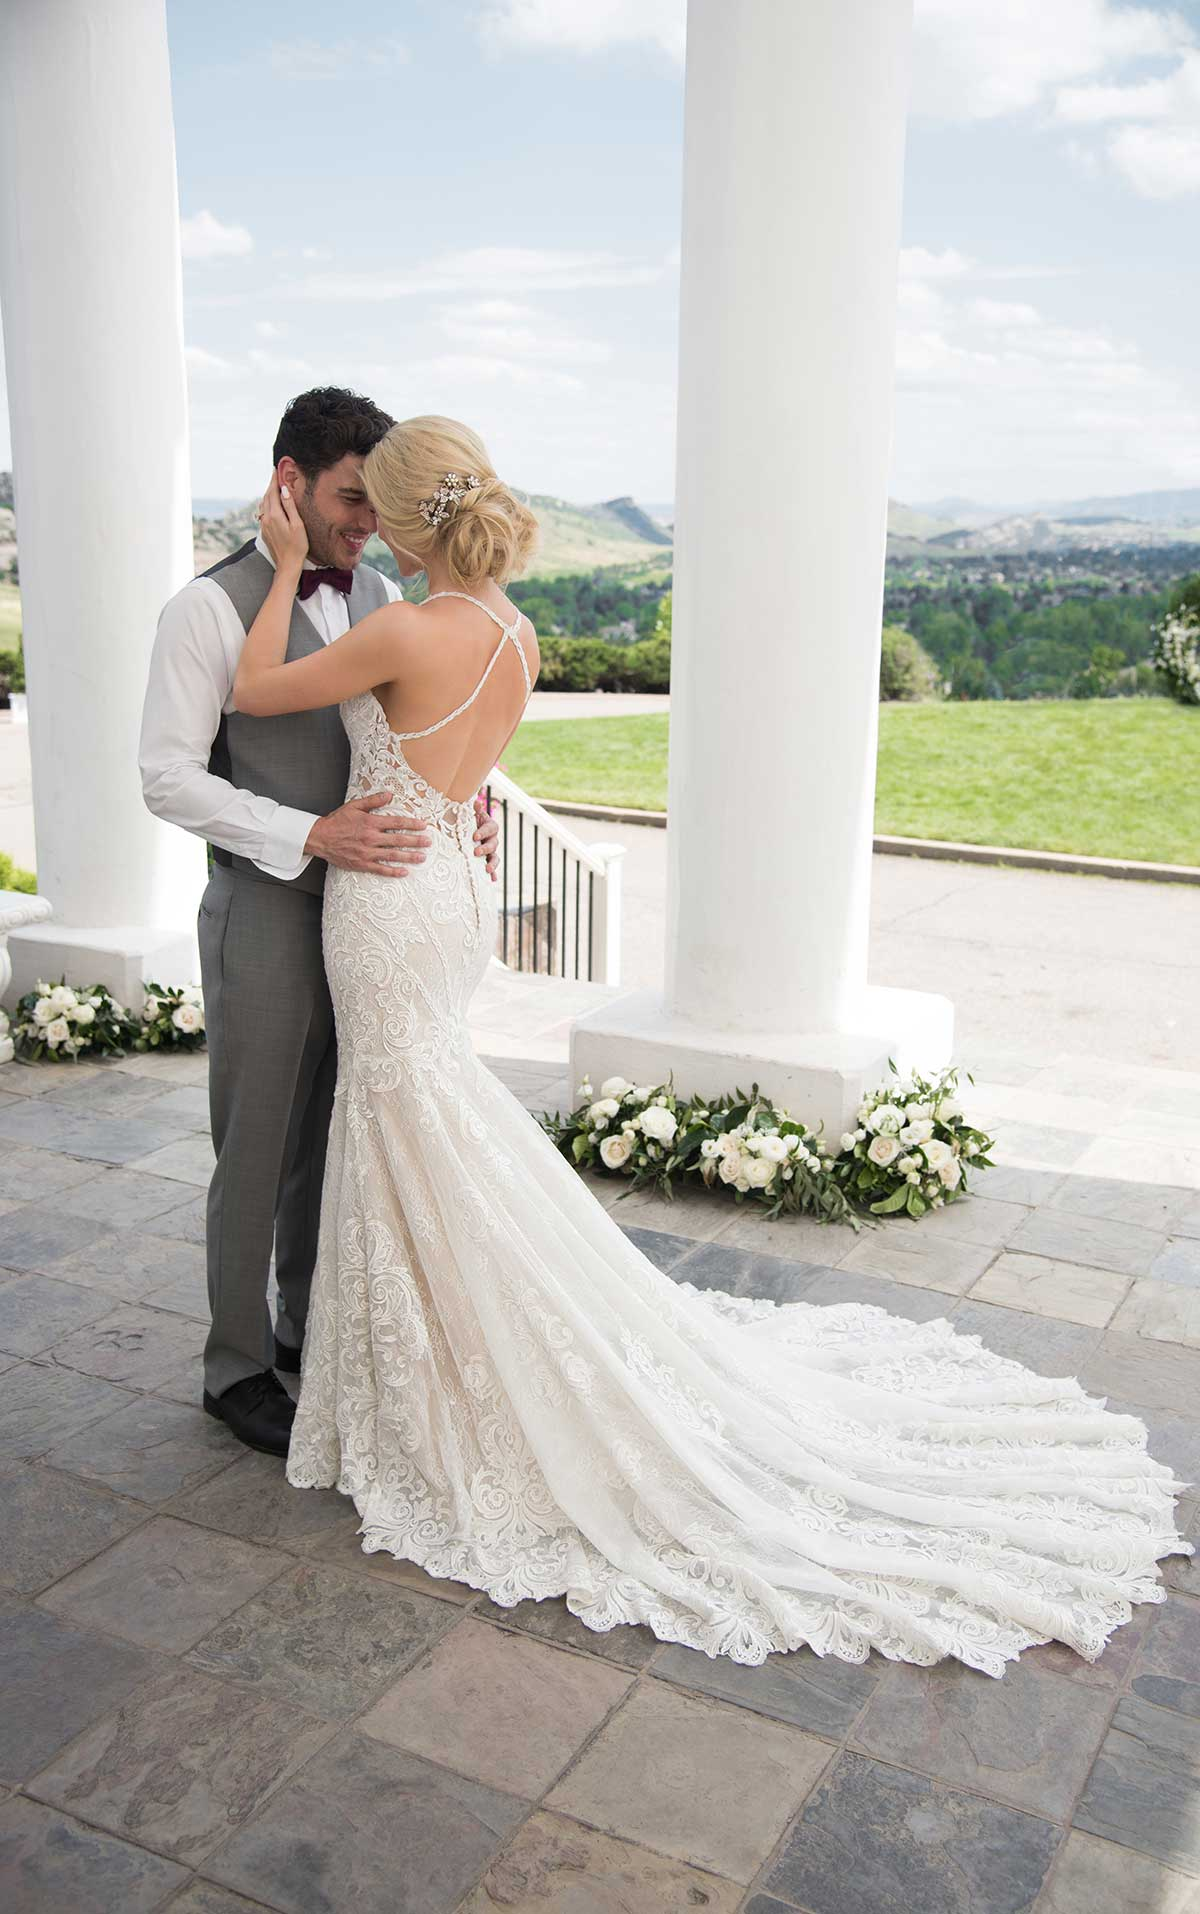 - This beautiful sheeth style lace wedding dress from Martina Liana features a stunning open back, dramatic train, and unique halter design. This gown is the perfect combination of sexy and sophisticated.